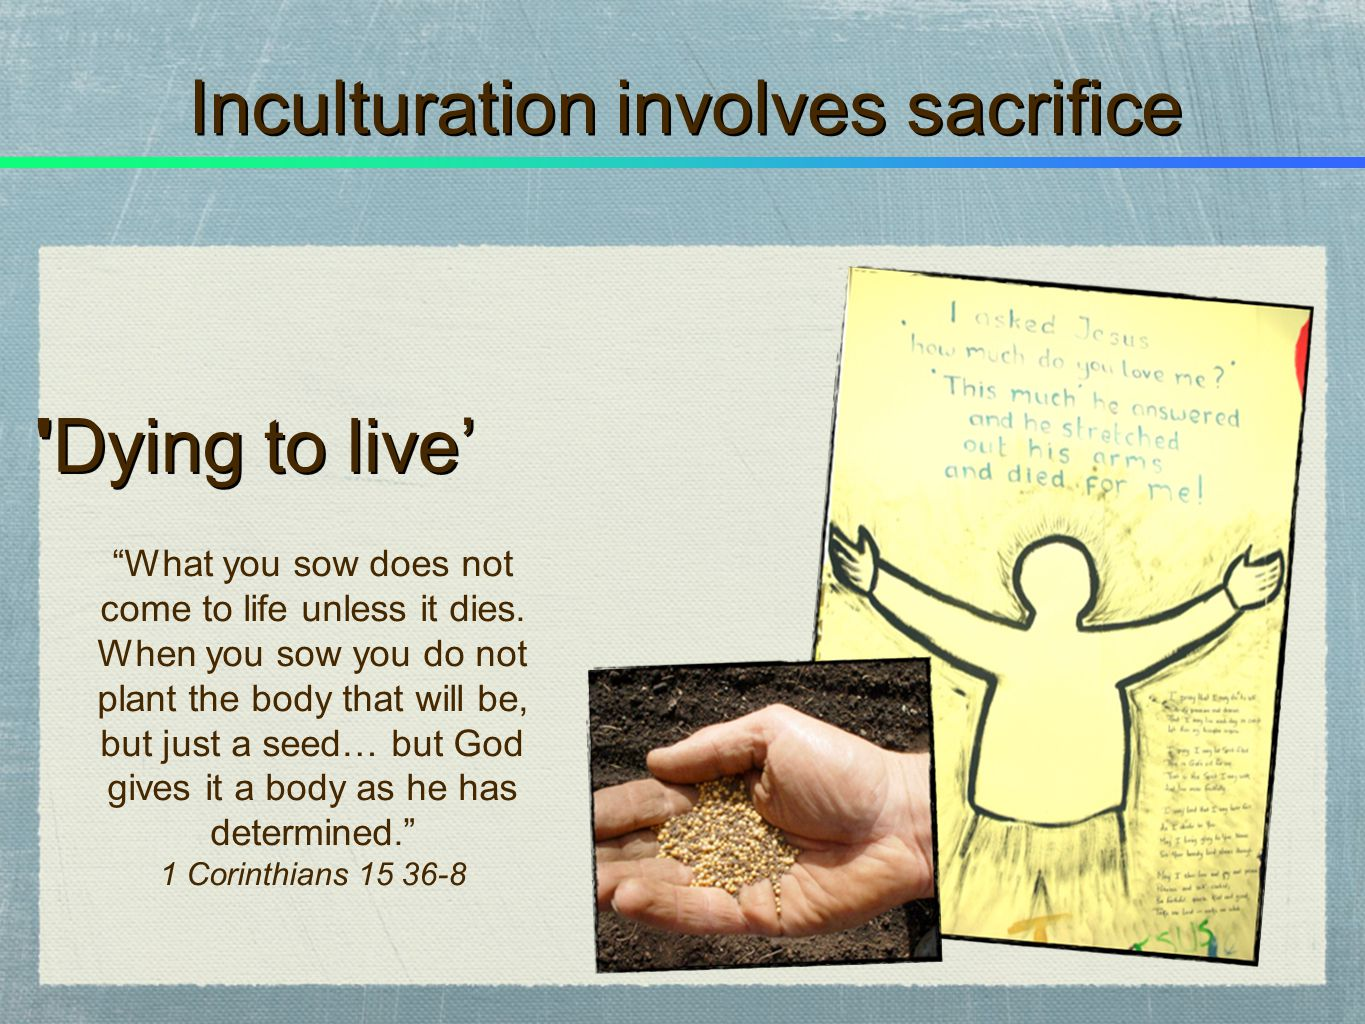 Inculturation involves sacrifice